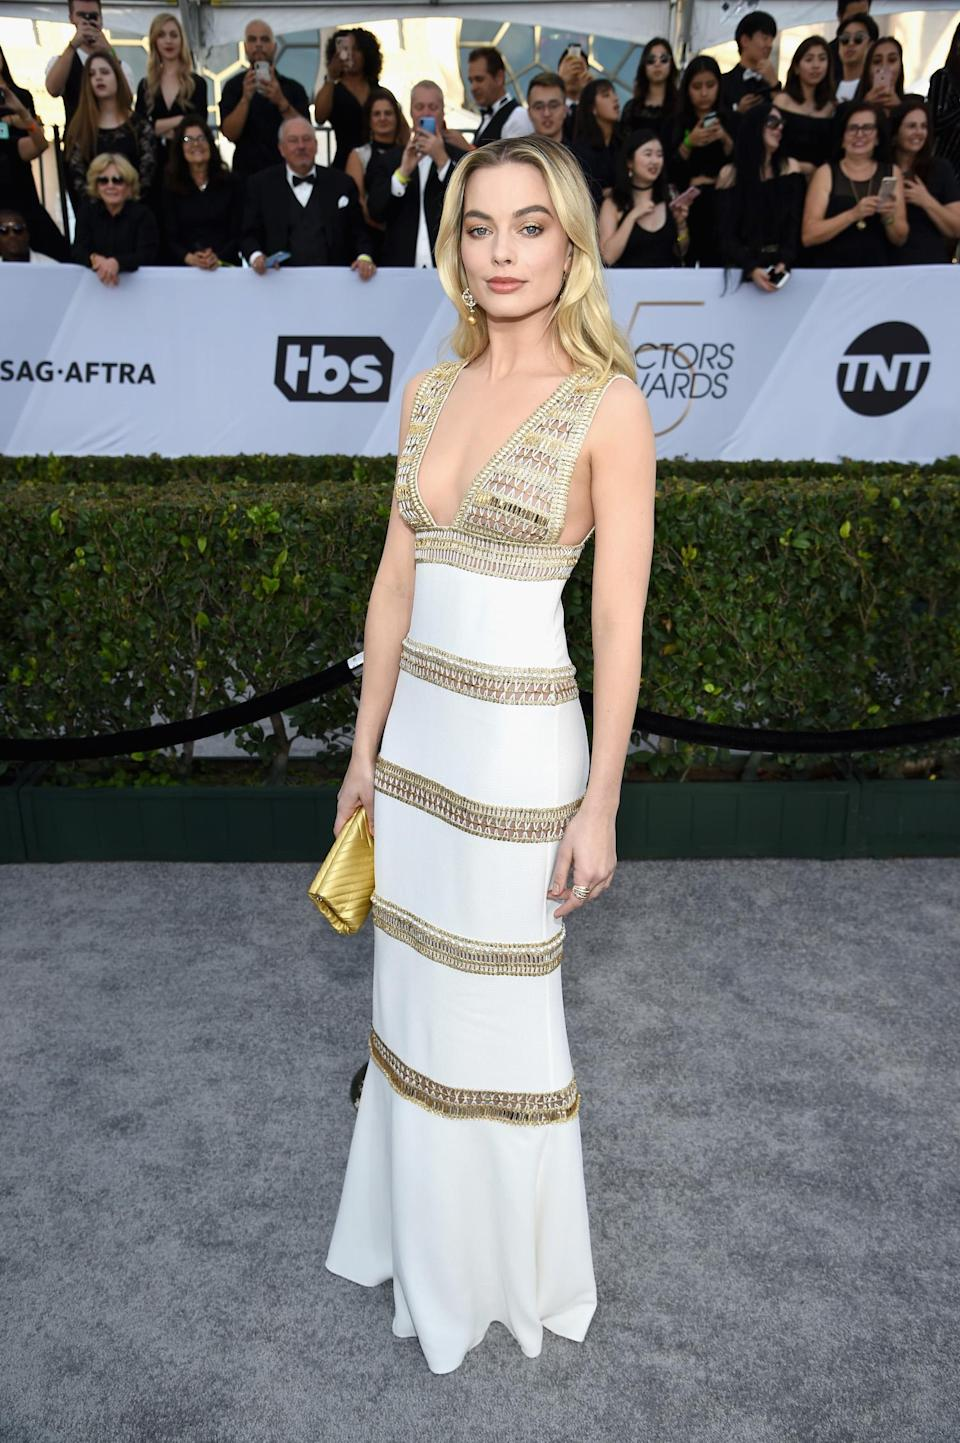 <p>Nominee Margot Robbie compelled in Chanel at the 2019 Screen Actors Guild Awards. (Photo: Getty Images) </p>